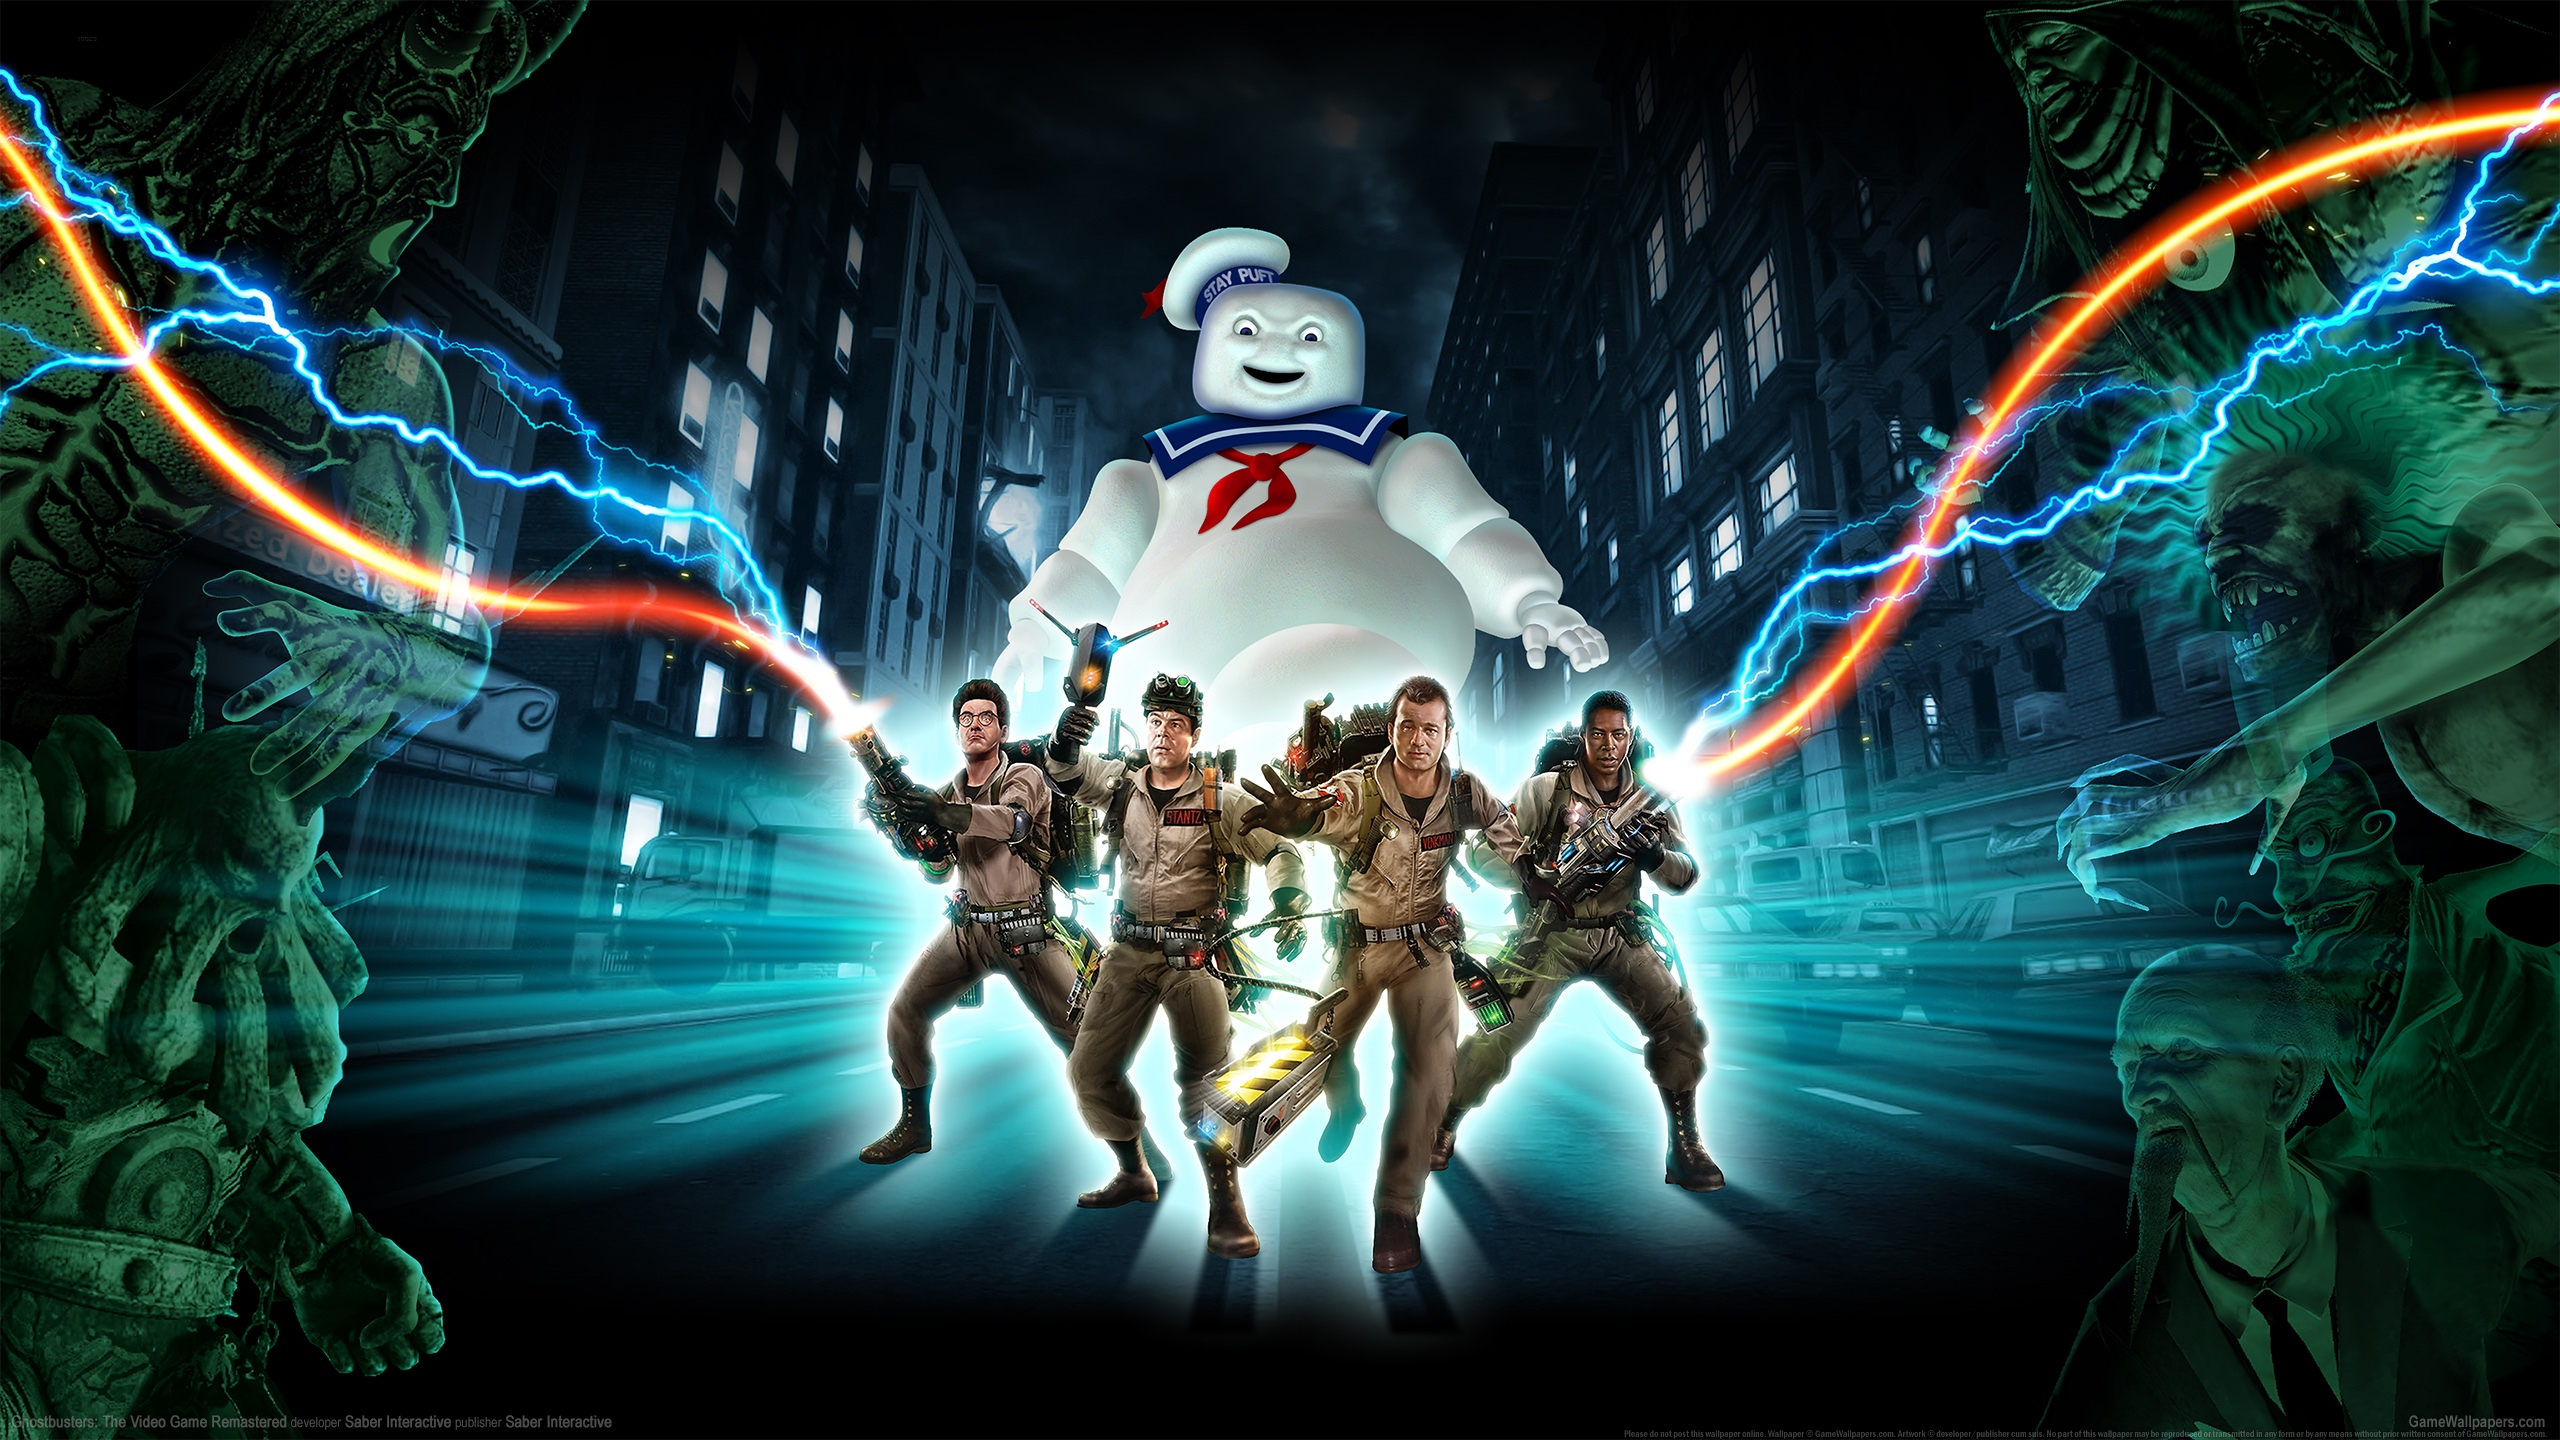 Ghostbusters: The Video Game Remastered 2560x1440 achtergrond 01